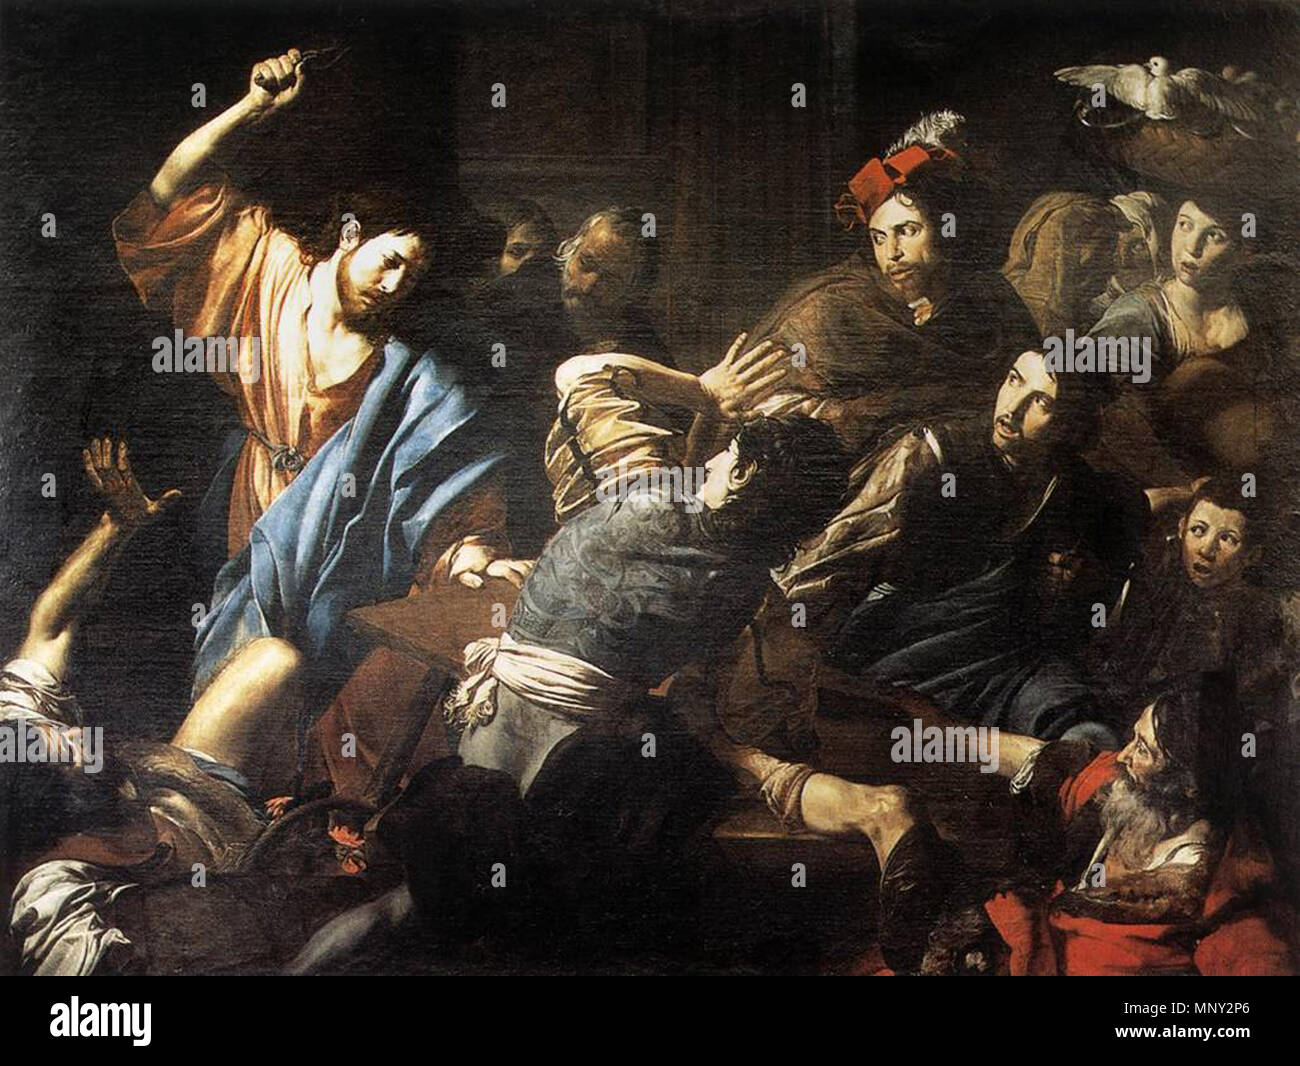 http://www.wga.hu/art/v/valentin/driving.jpg   Christ Driving the Money Changers out of the Temple   circa 1618.    Valentin de Boulogne (1591–1632)  Alternative names Jean Valentin Le Valentin  Description French painter  Date of birth/death 3 January 1591 (baptised) 20 August 1632 (buried)  Location of birth/death Coulommiers Rome  Work location Rome (1612-1632)  Authority control  : Q1337275 VIAF:120746211 ISNI:0000 0001 1580 793X ULAN:500021073 LCCN:no90018840 WGA:VALENTIN DE BOULOGNE WorldCat 1218 Valentin de Boulogne, Christ Driving the Money Changers out of the Temple - Stock Image